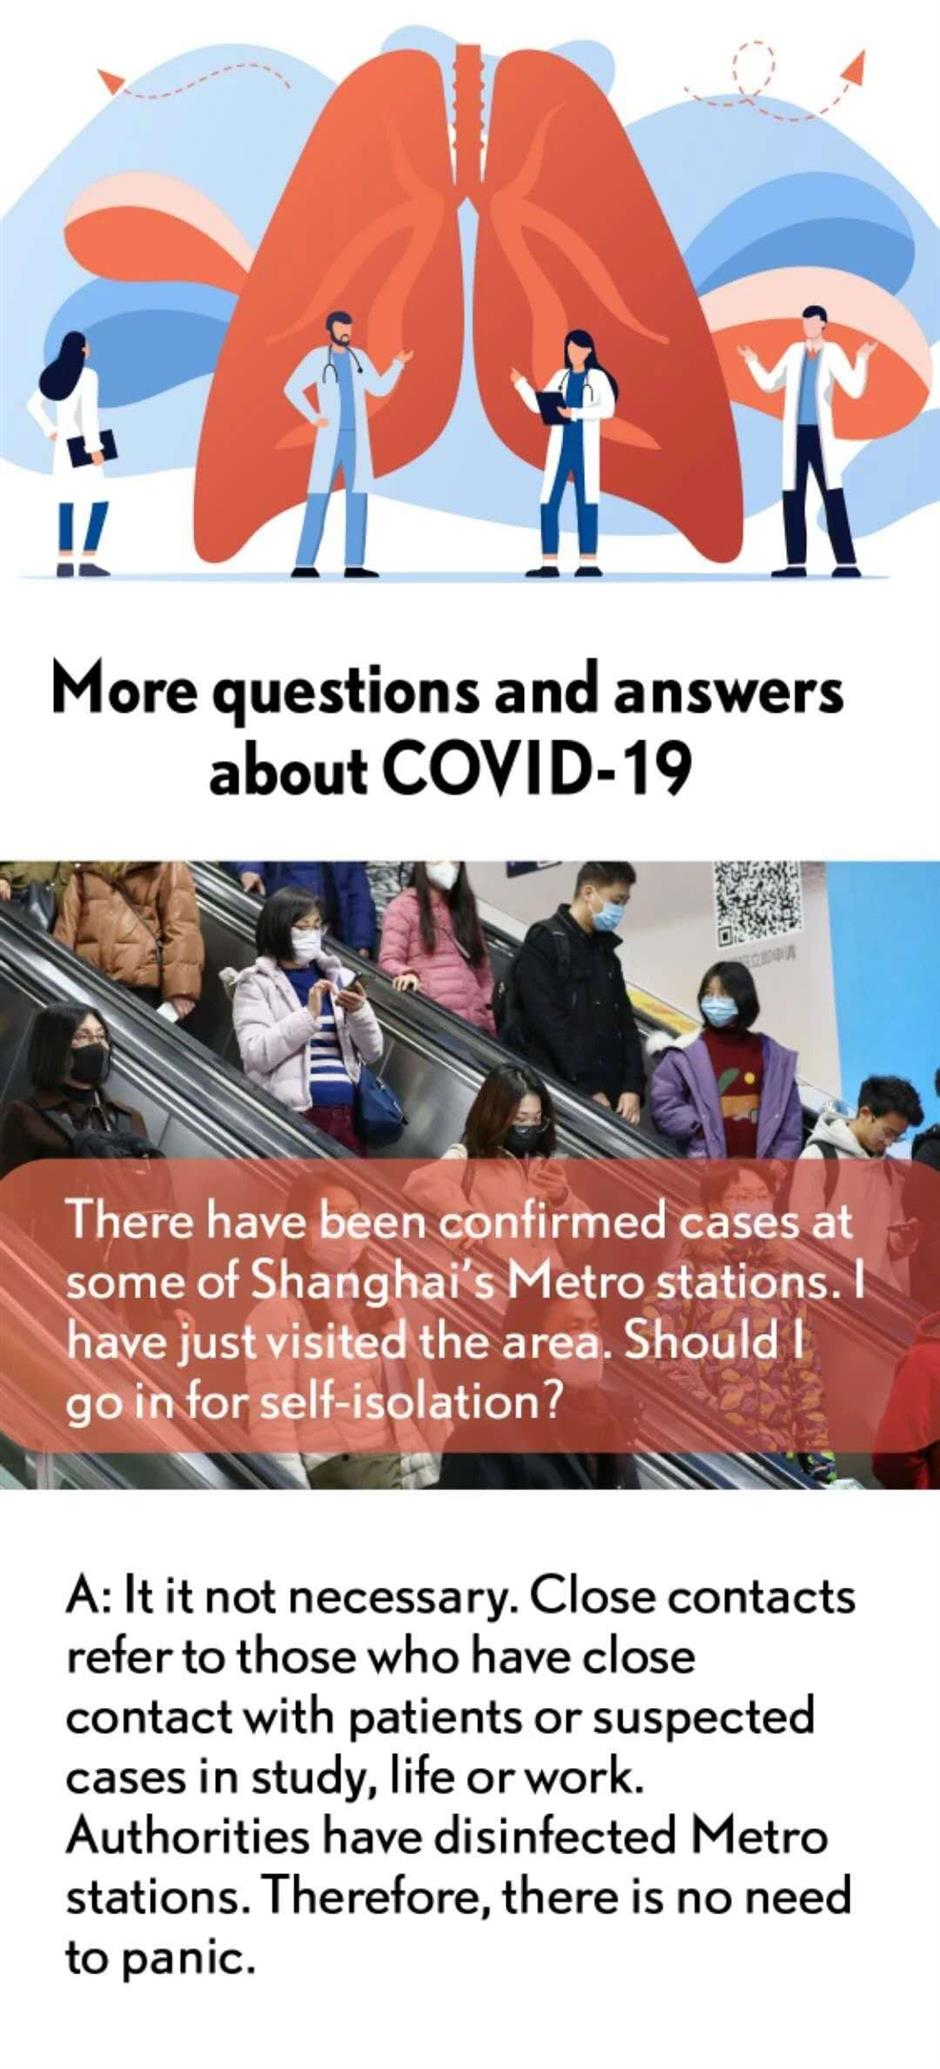 More questions and answers about COVID-19